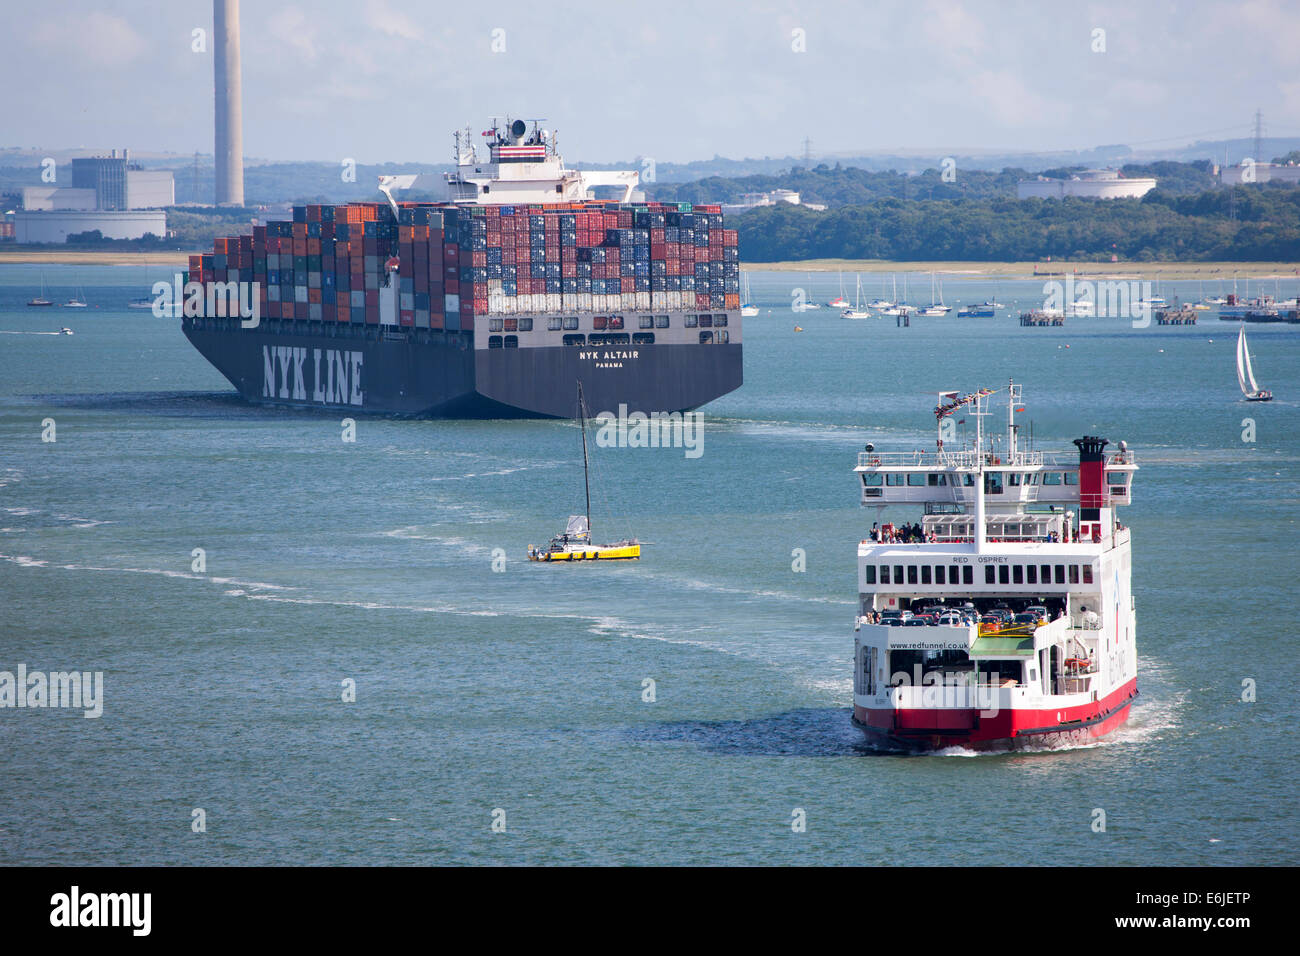 Southampton Docks NYK Altair container ship and Red Funnel Red Osprey car ferry - Stock Image